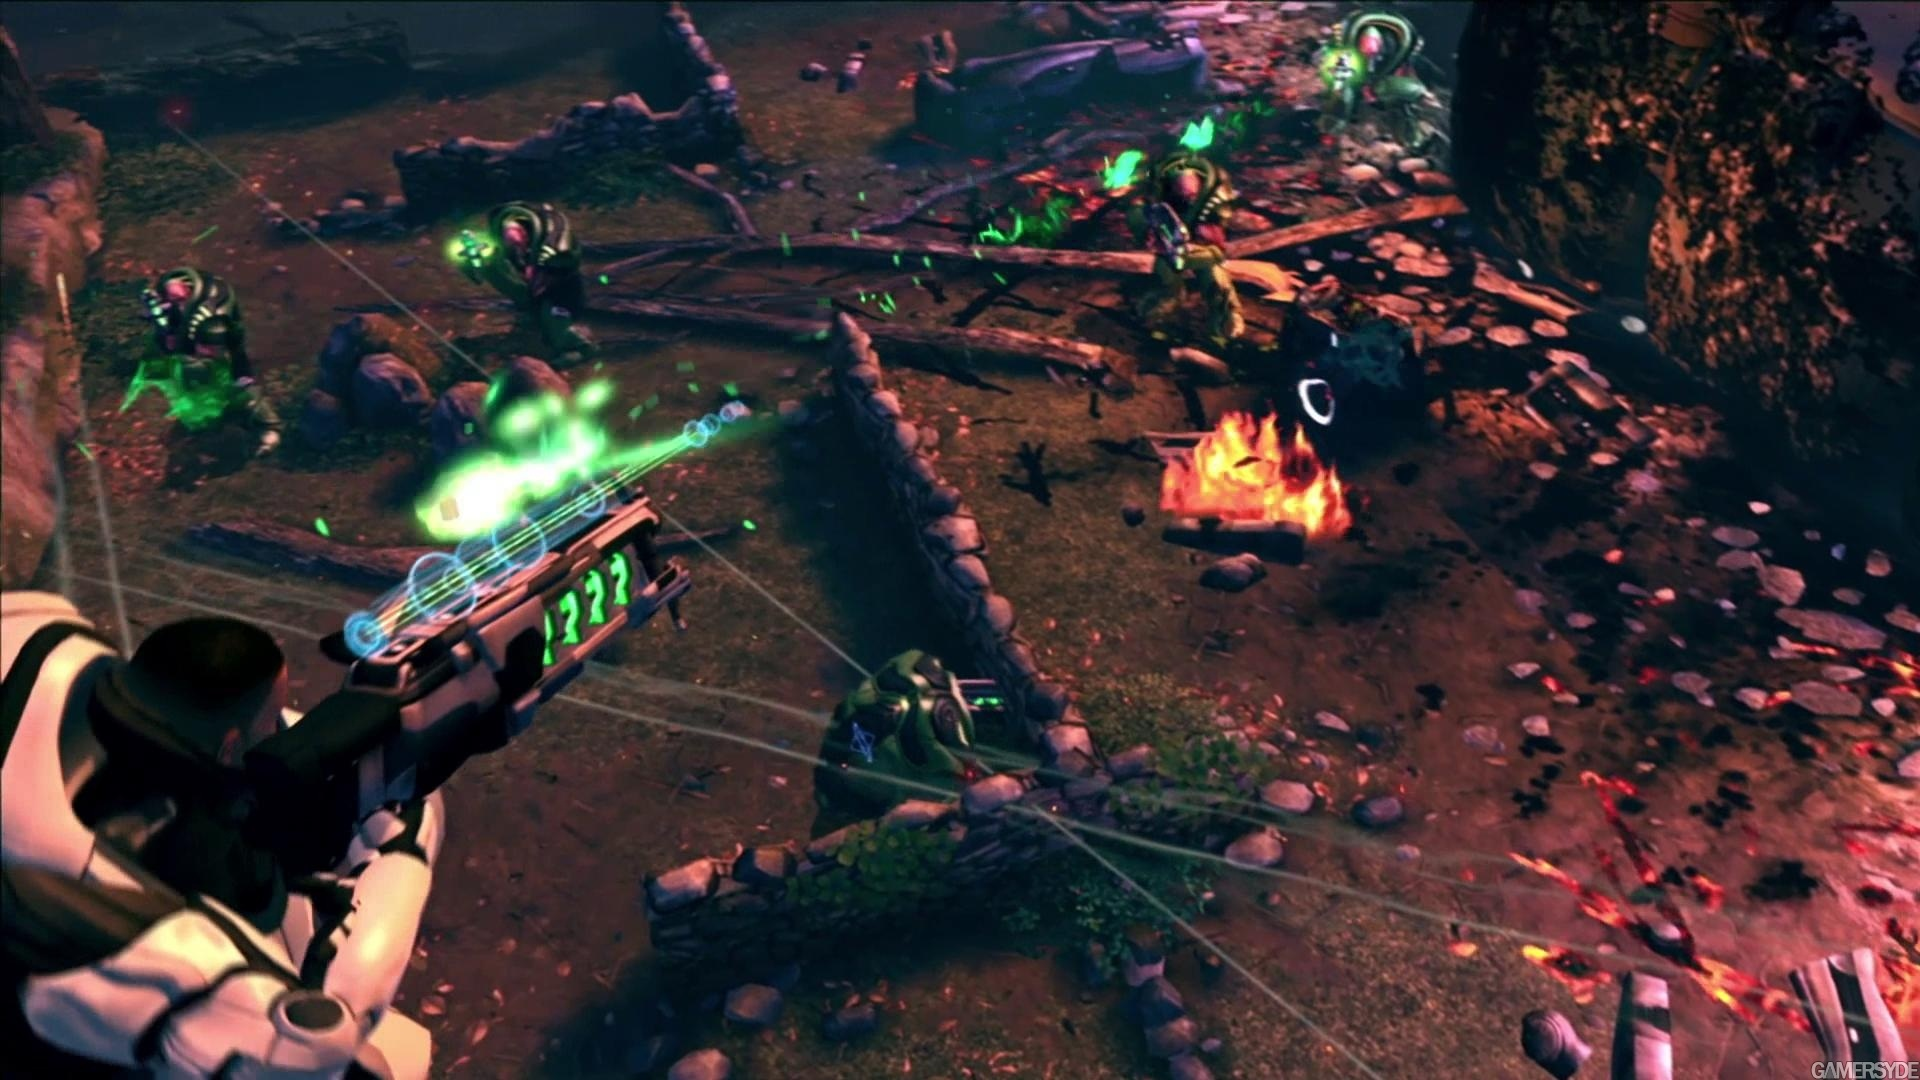 galerie xcom: enemy unknown - fichier: casualties of war (en